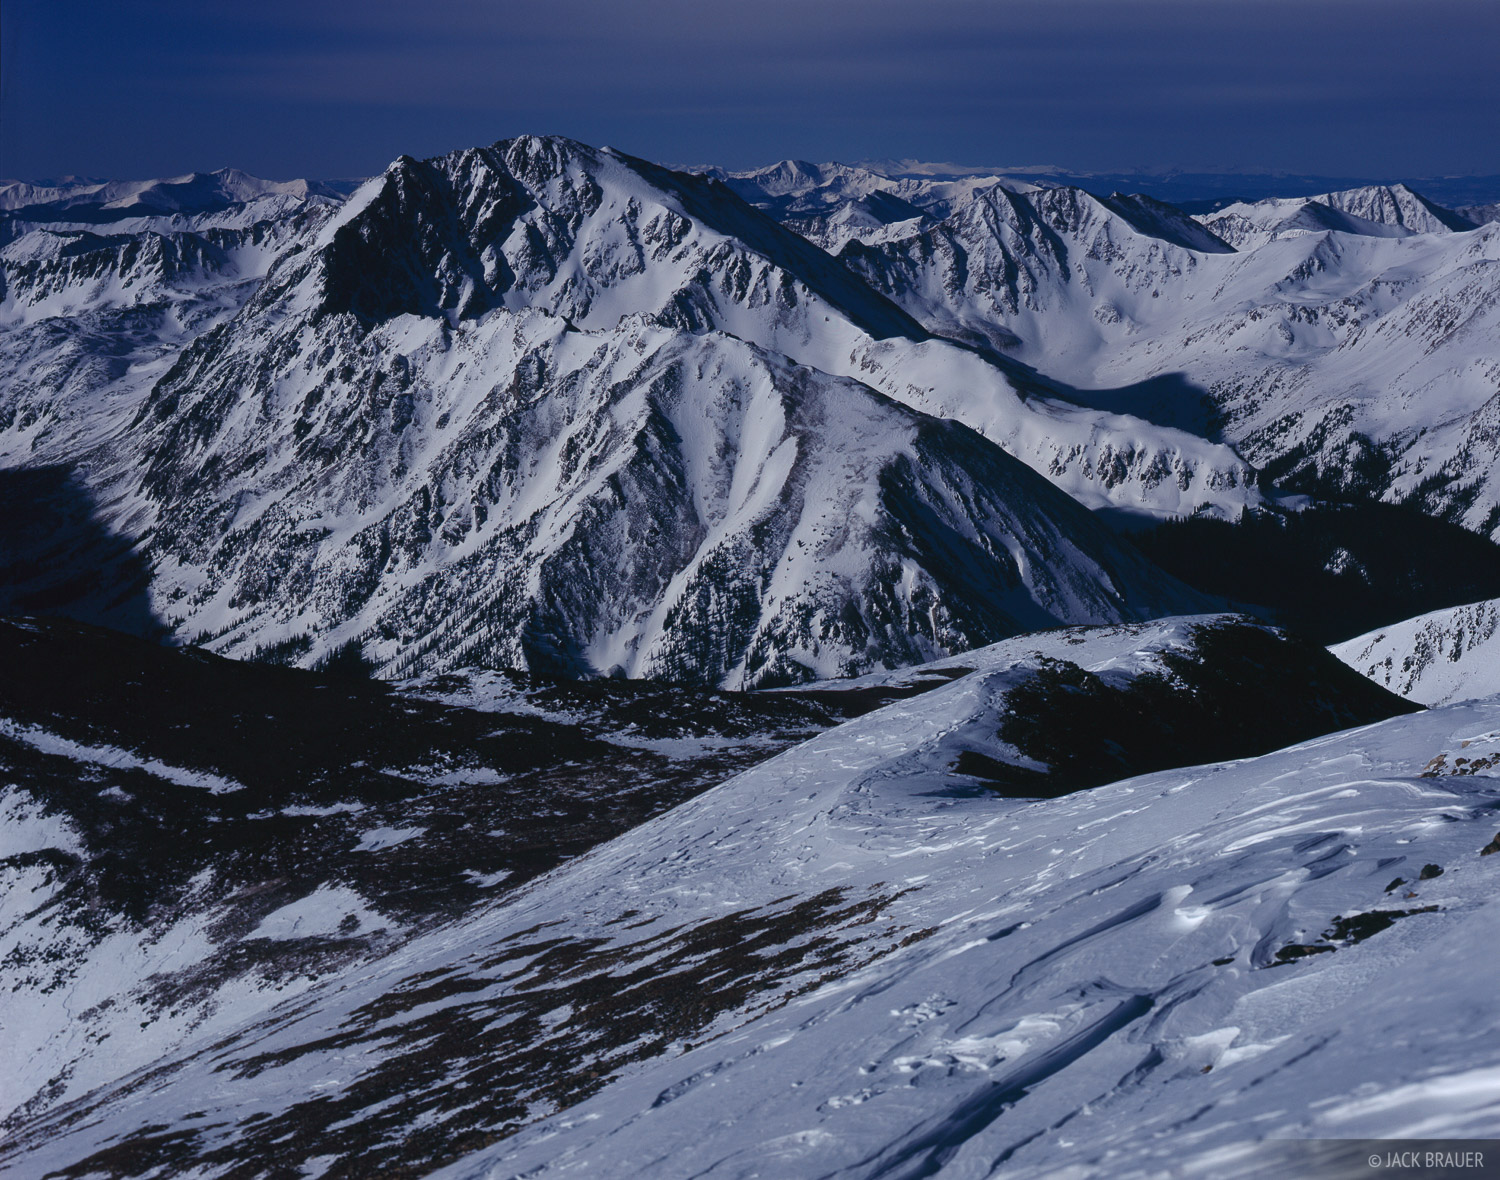 La Plata Peak, moonlight, fourteener, Sawatch Range, Colorado, Collegiate Peaks Wilderness, photo